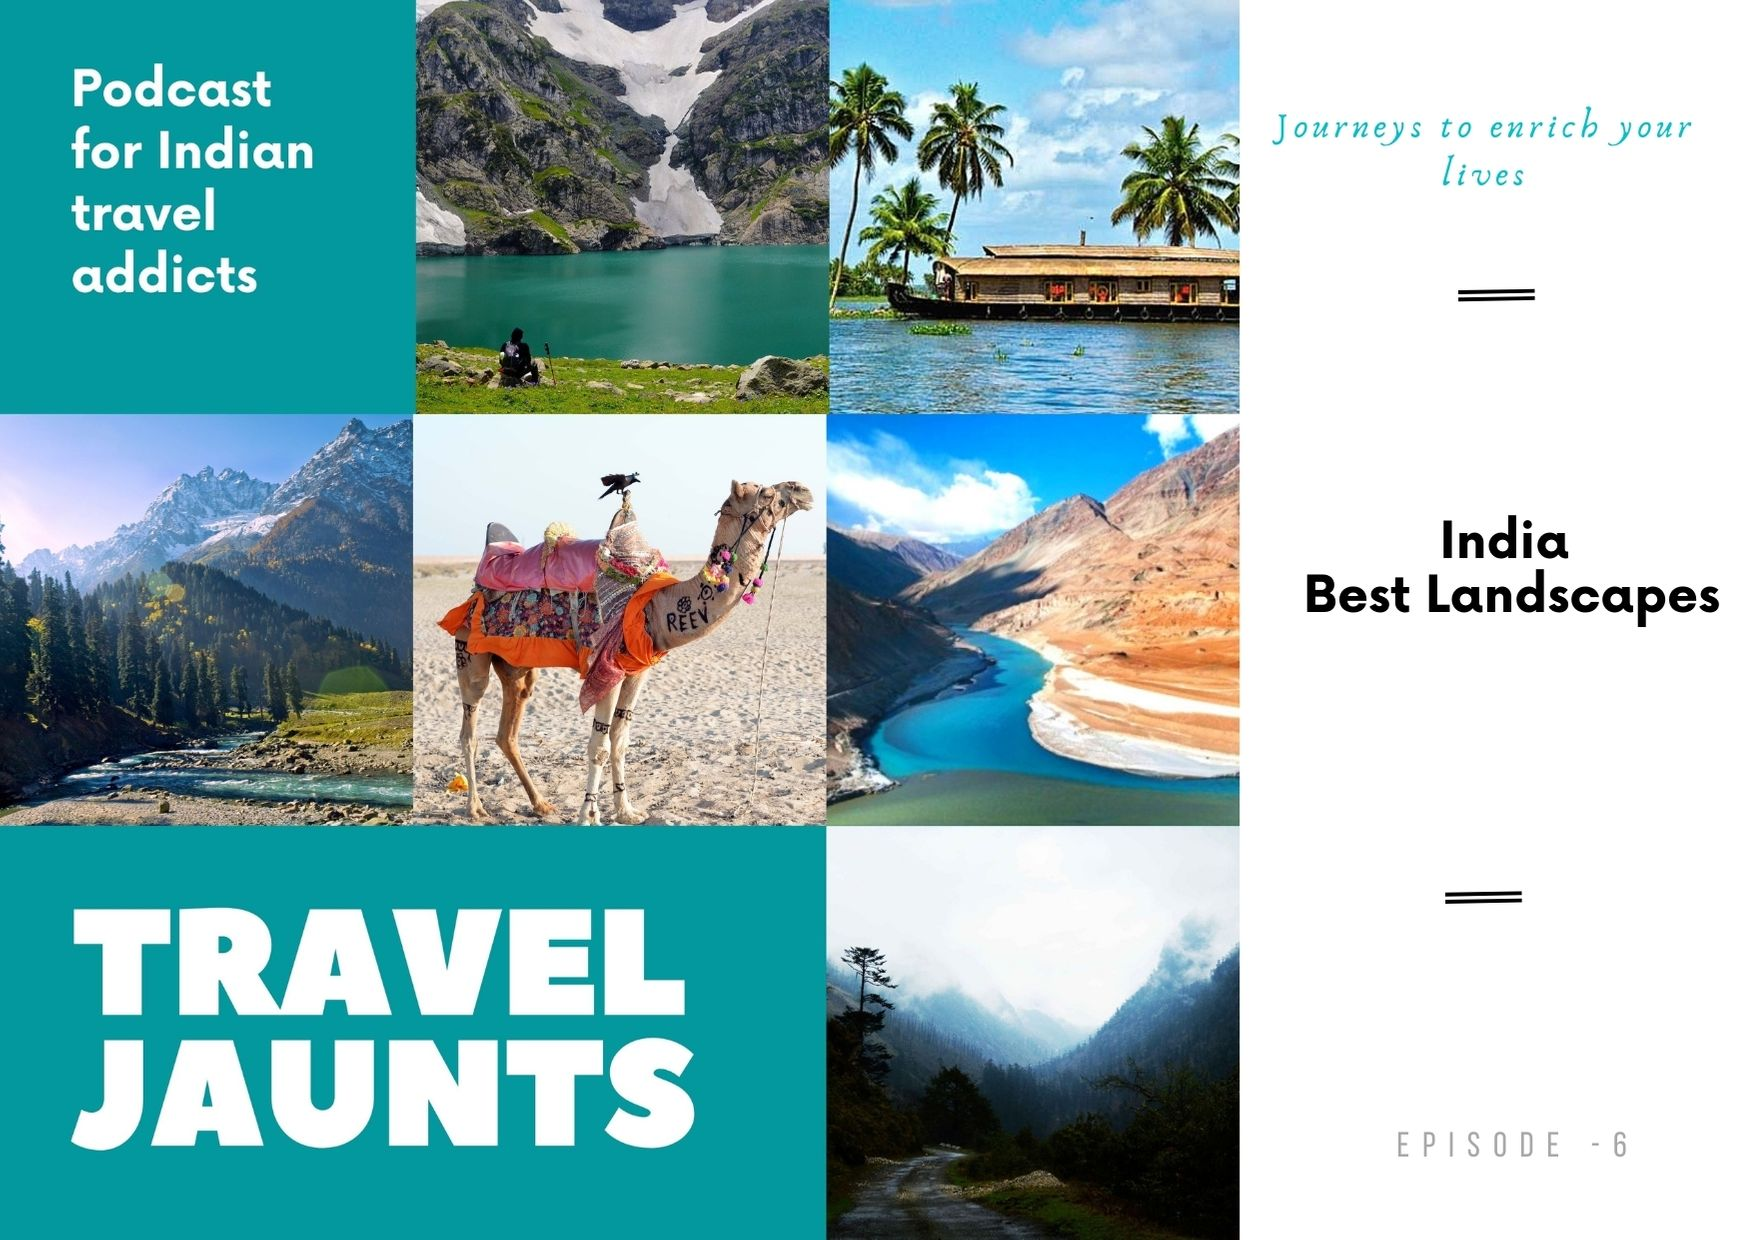 Top India Landscapes Podcast